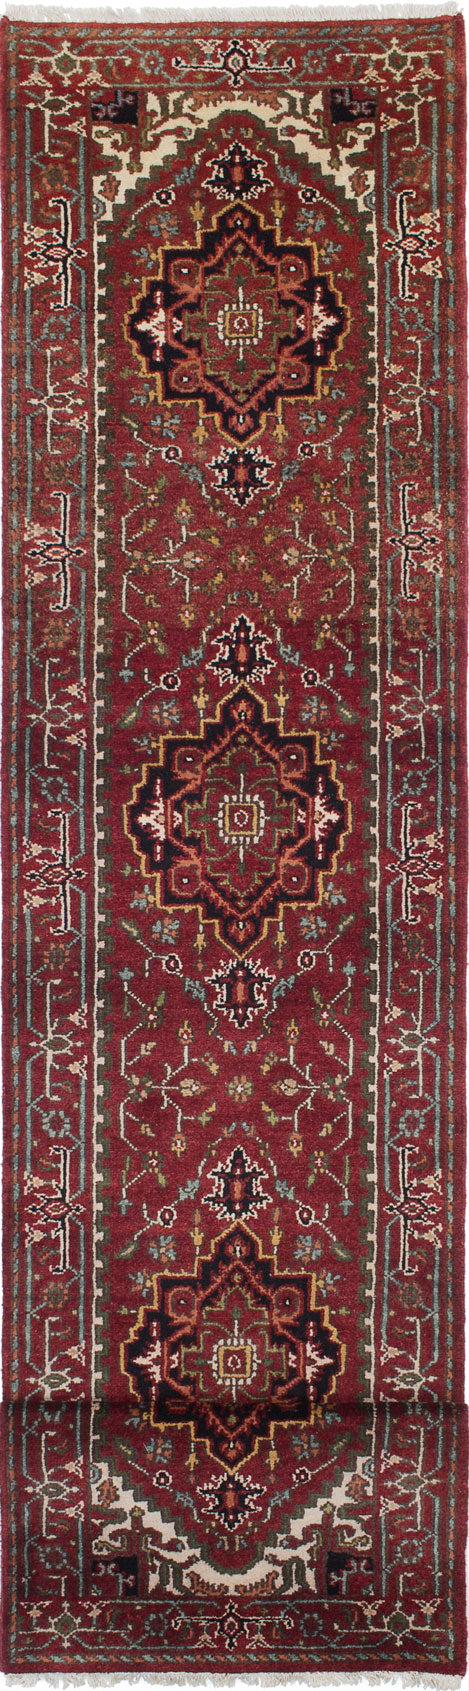 "Hand-knotted Indian Floral  Traditional Serapi-Heritage Runner rug  Light Burgundy 2'5 x 12'6"" """